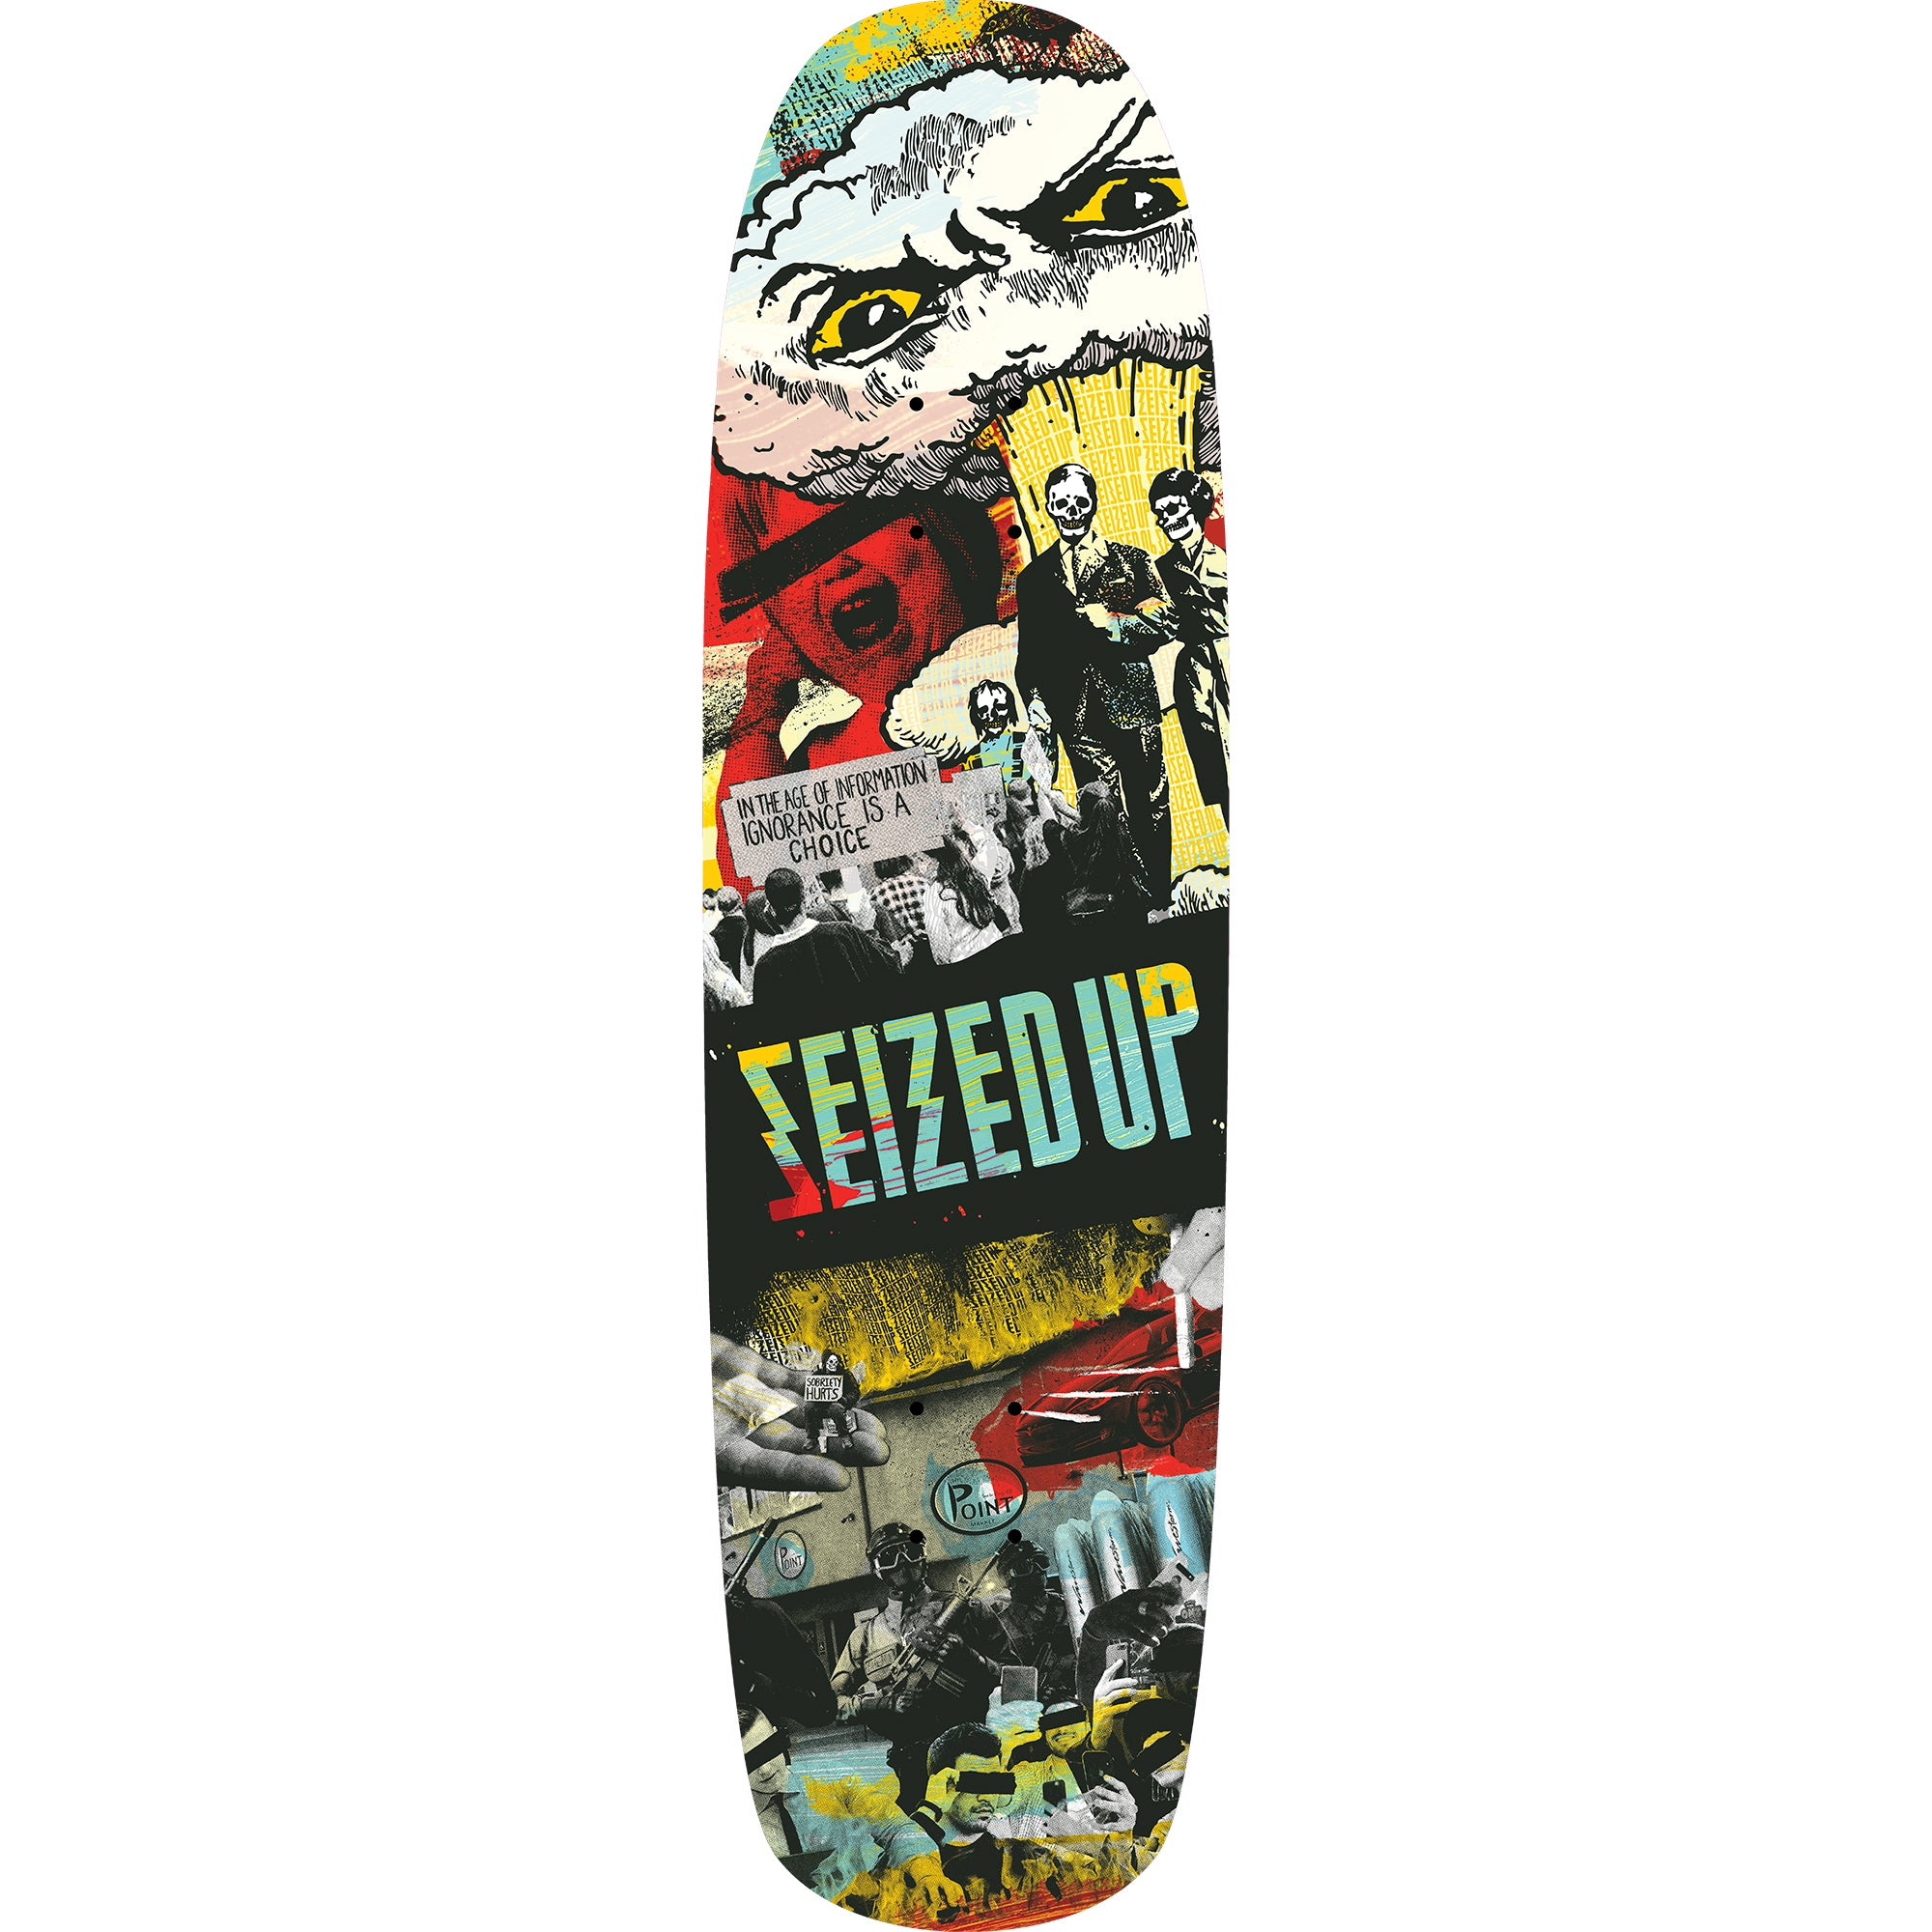 Seized Up - Brace Yourself - Skateboard Deck